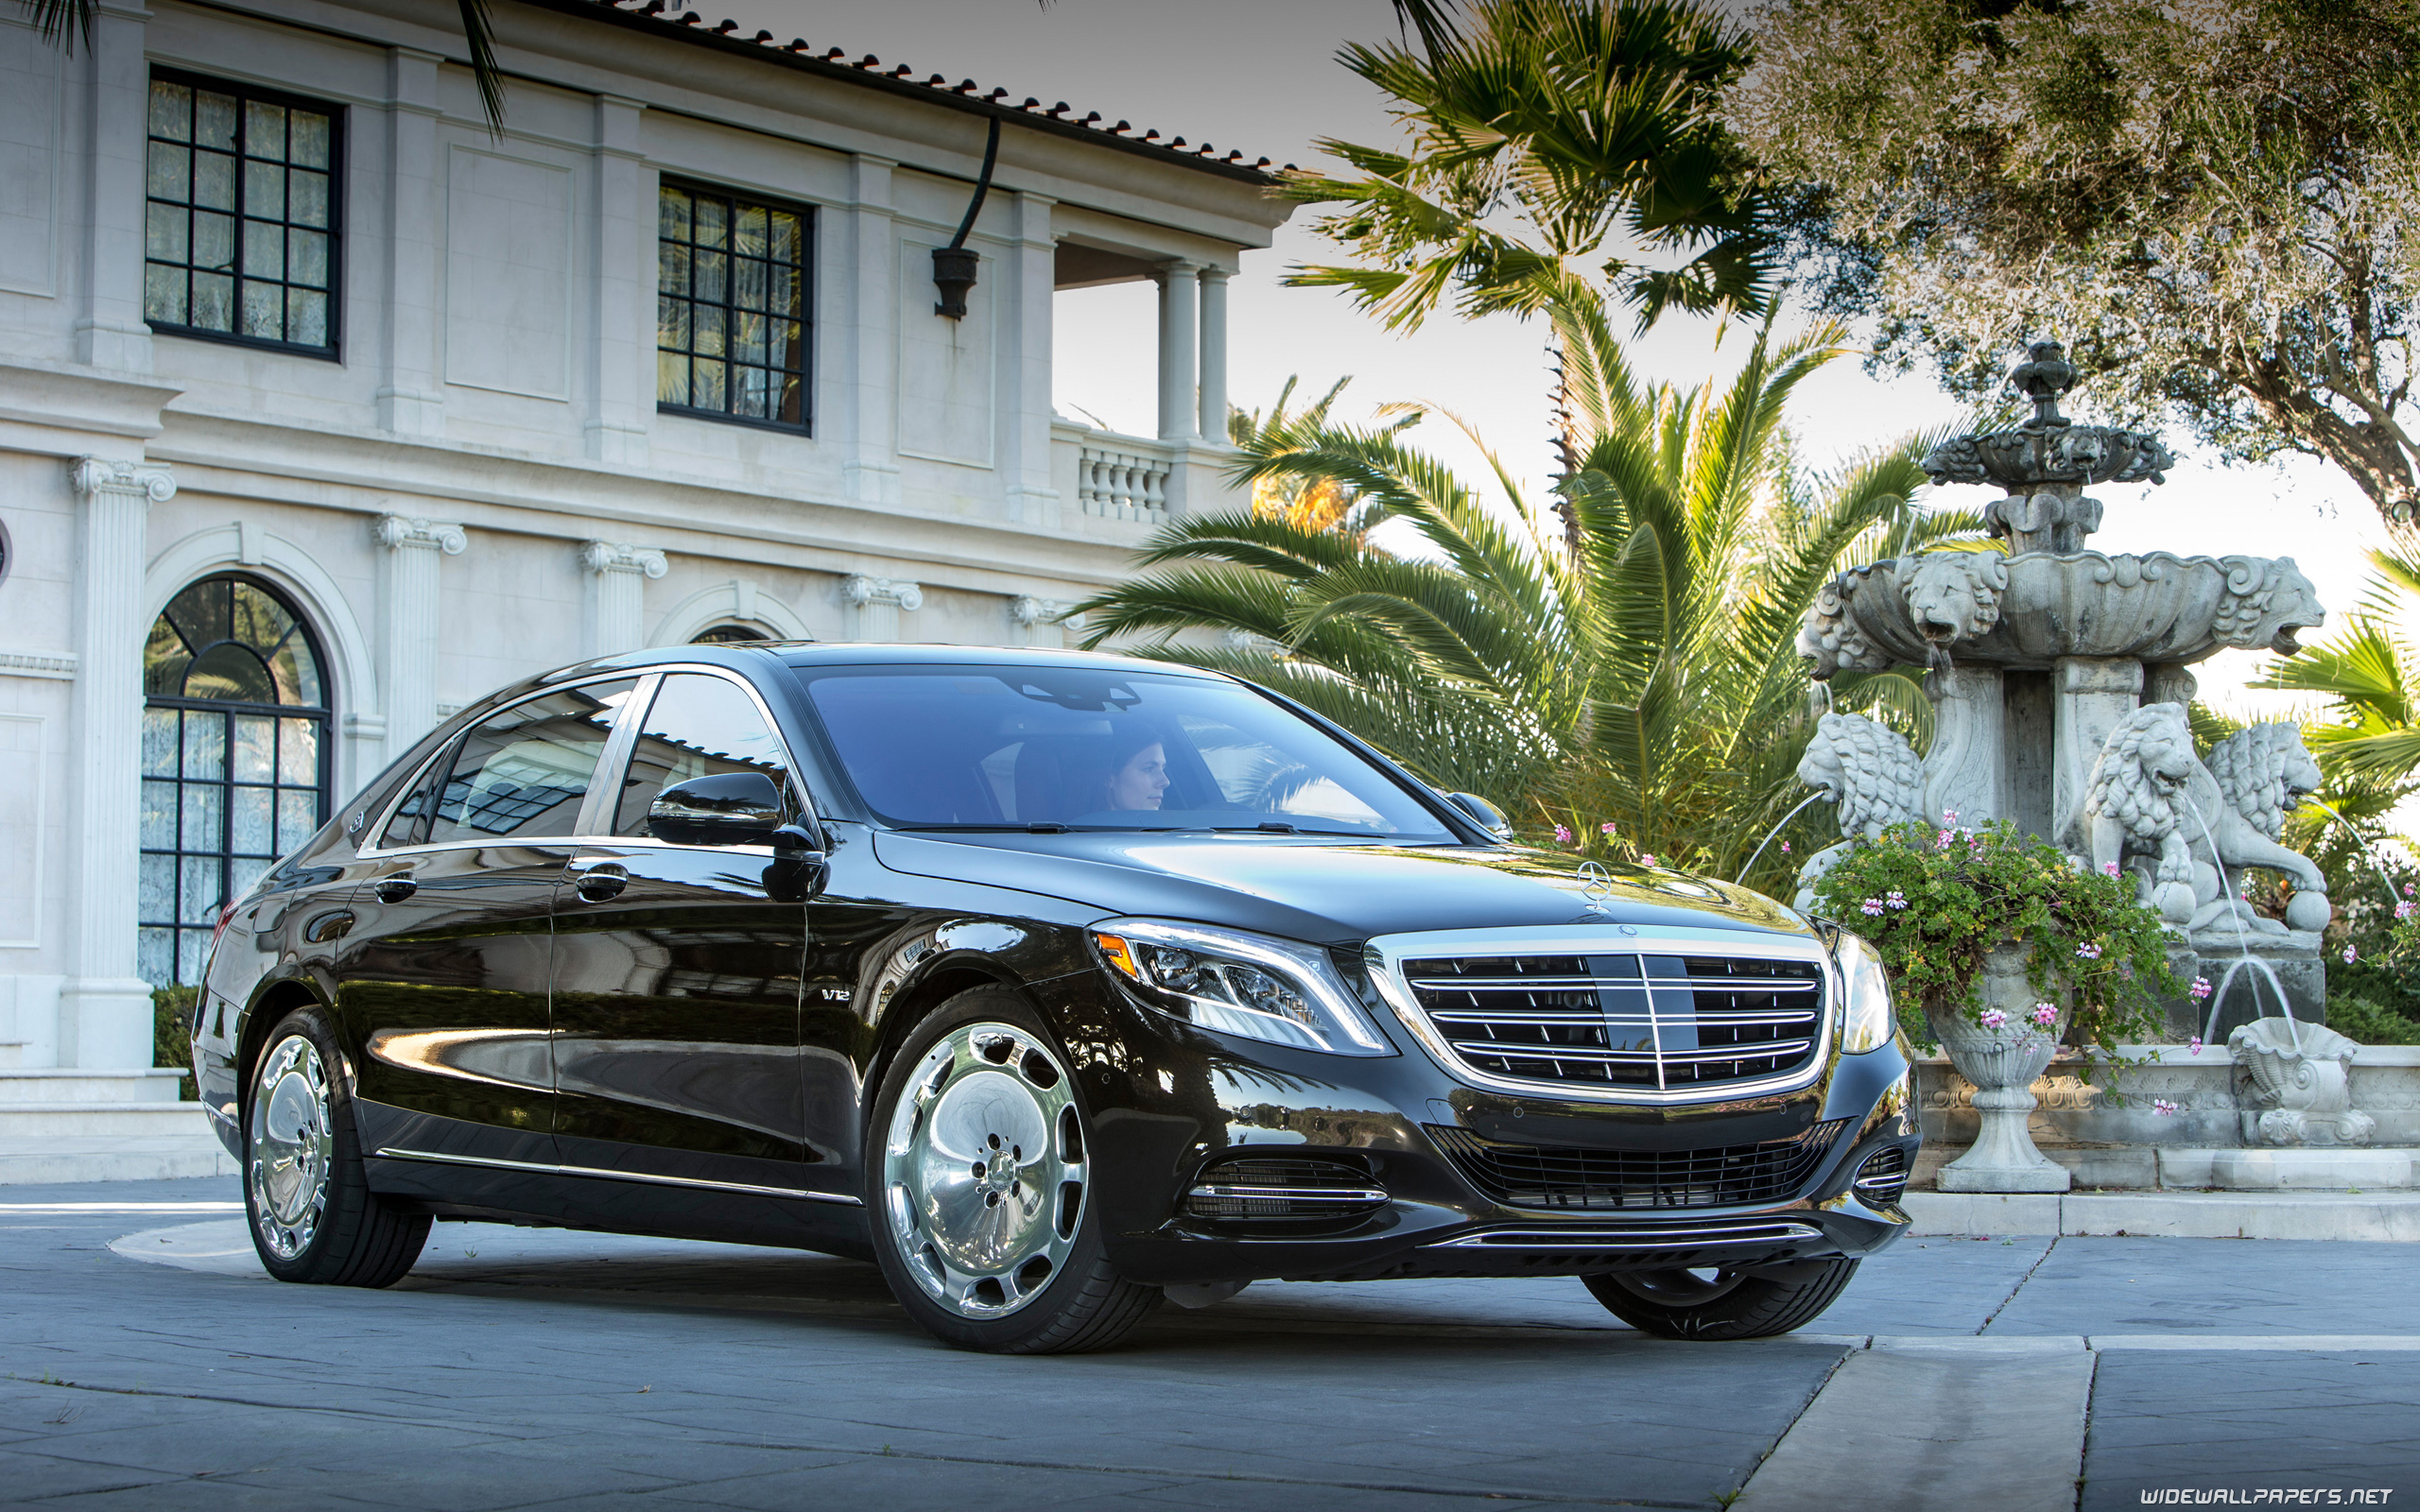 mercedes maybach s600 us spec 2560x1440 2560x1600 3840x2160